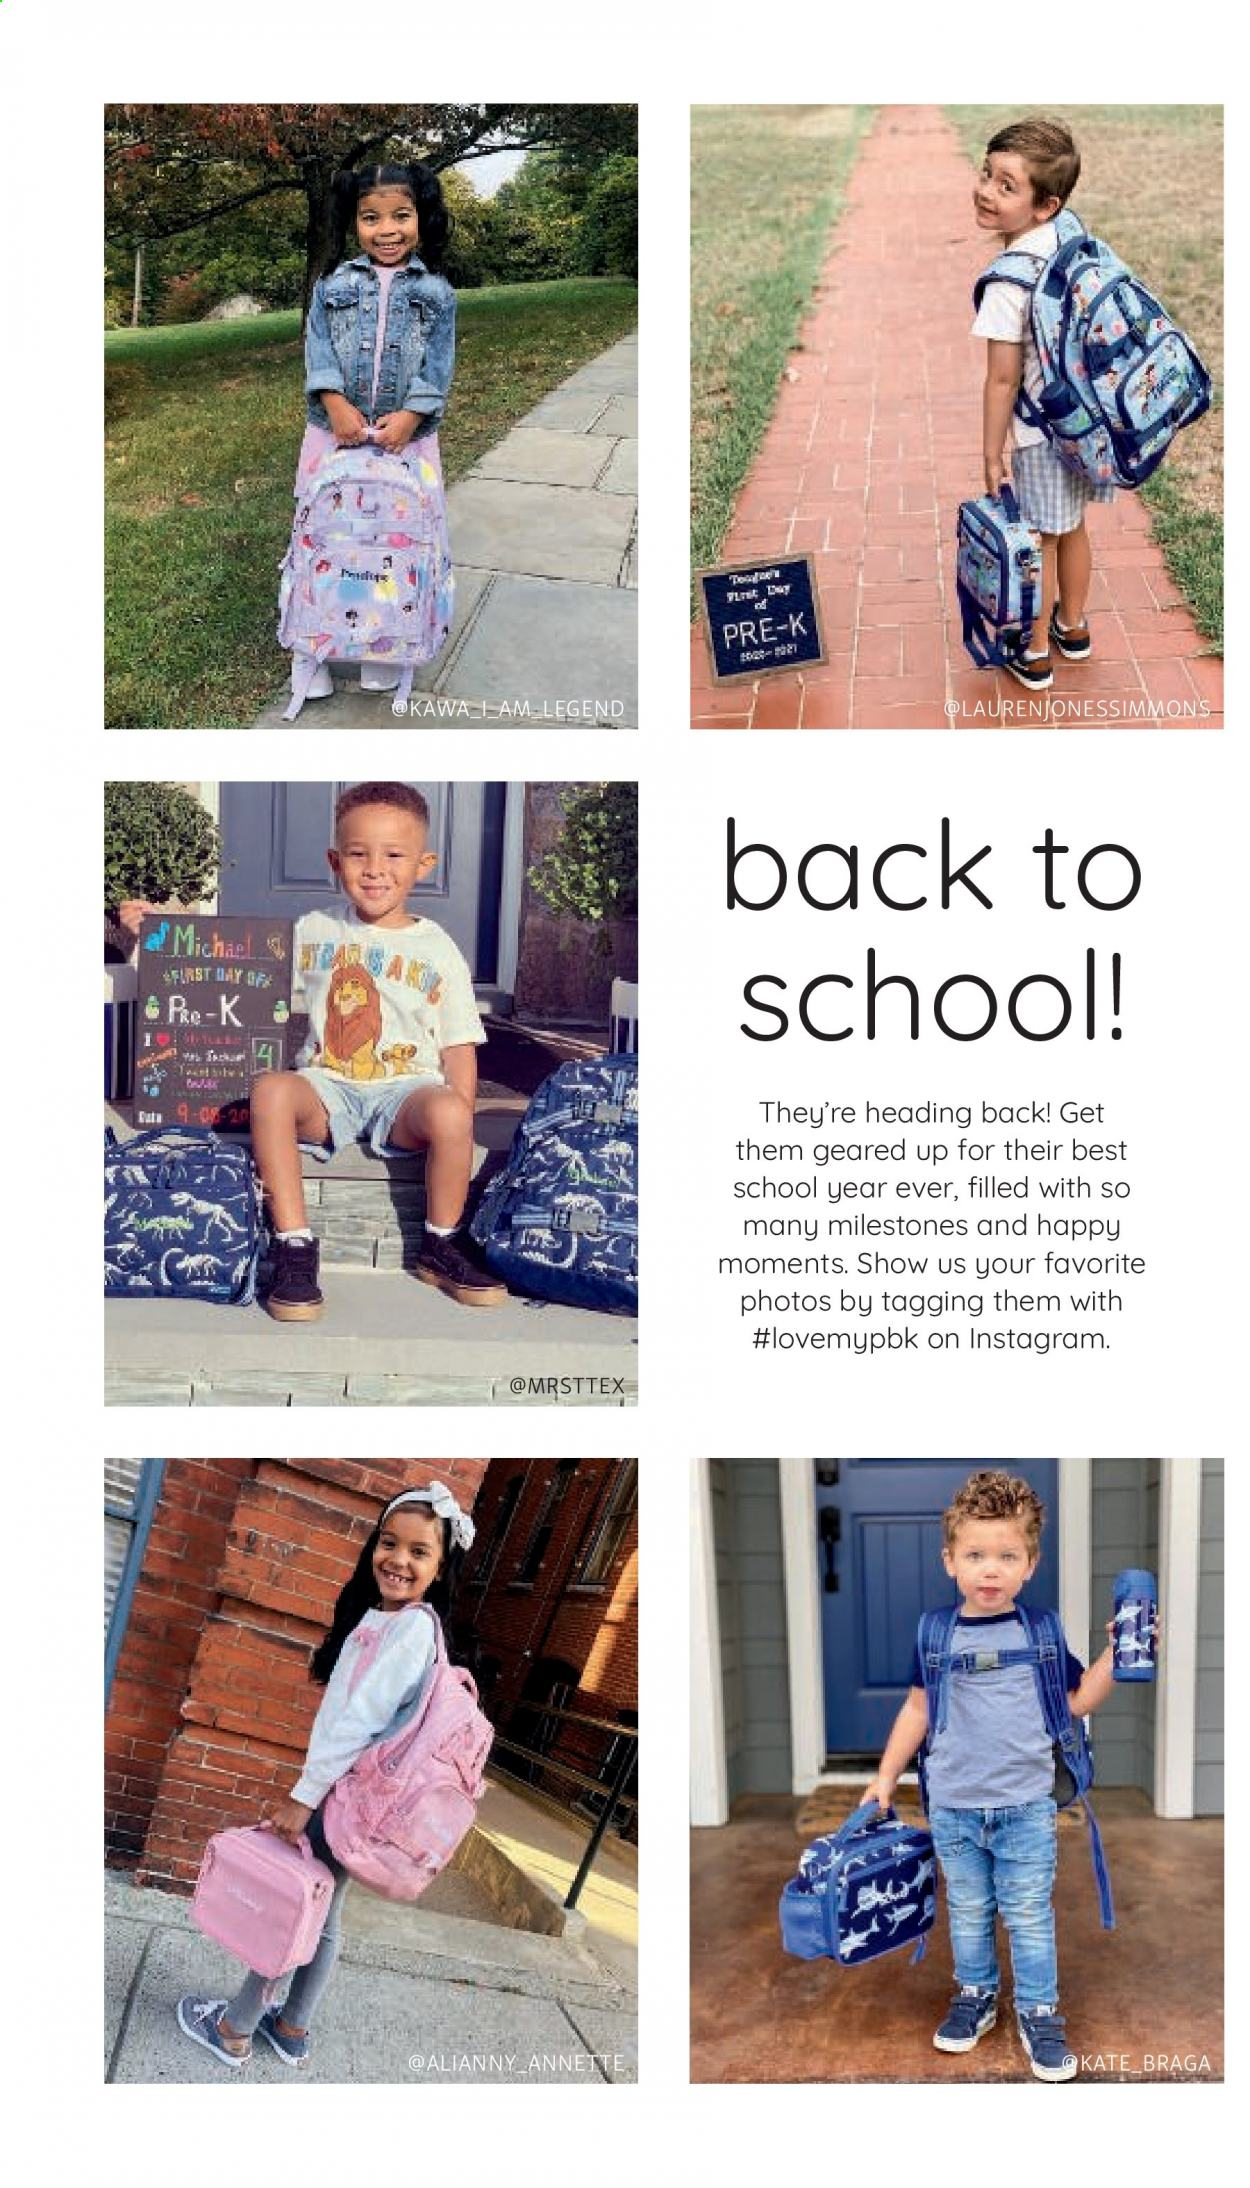 Pottery Barn Ad Kids - Back to School 2021 - Page 2